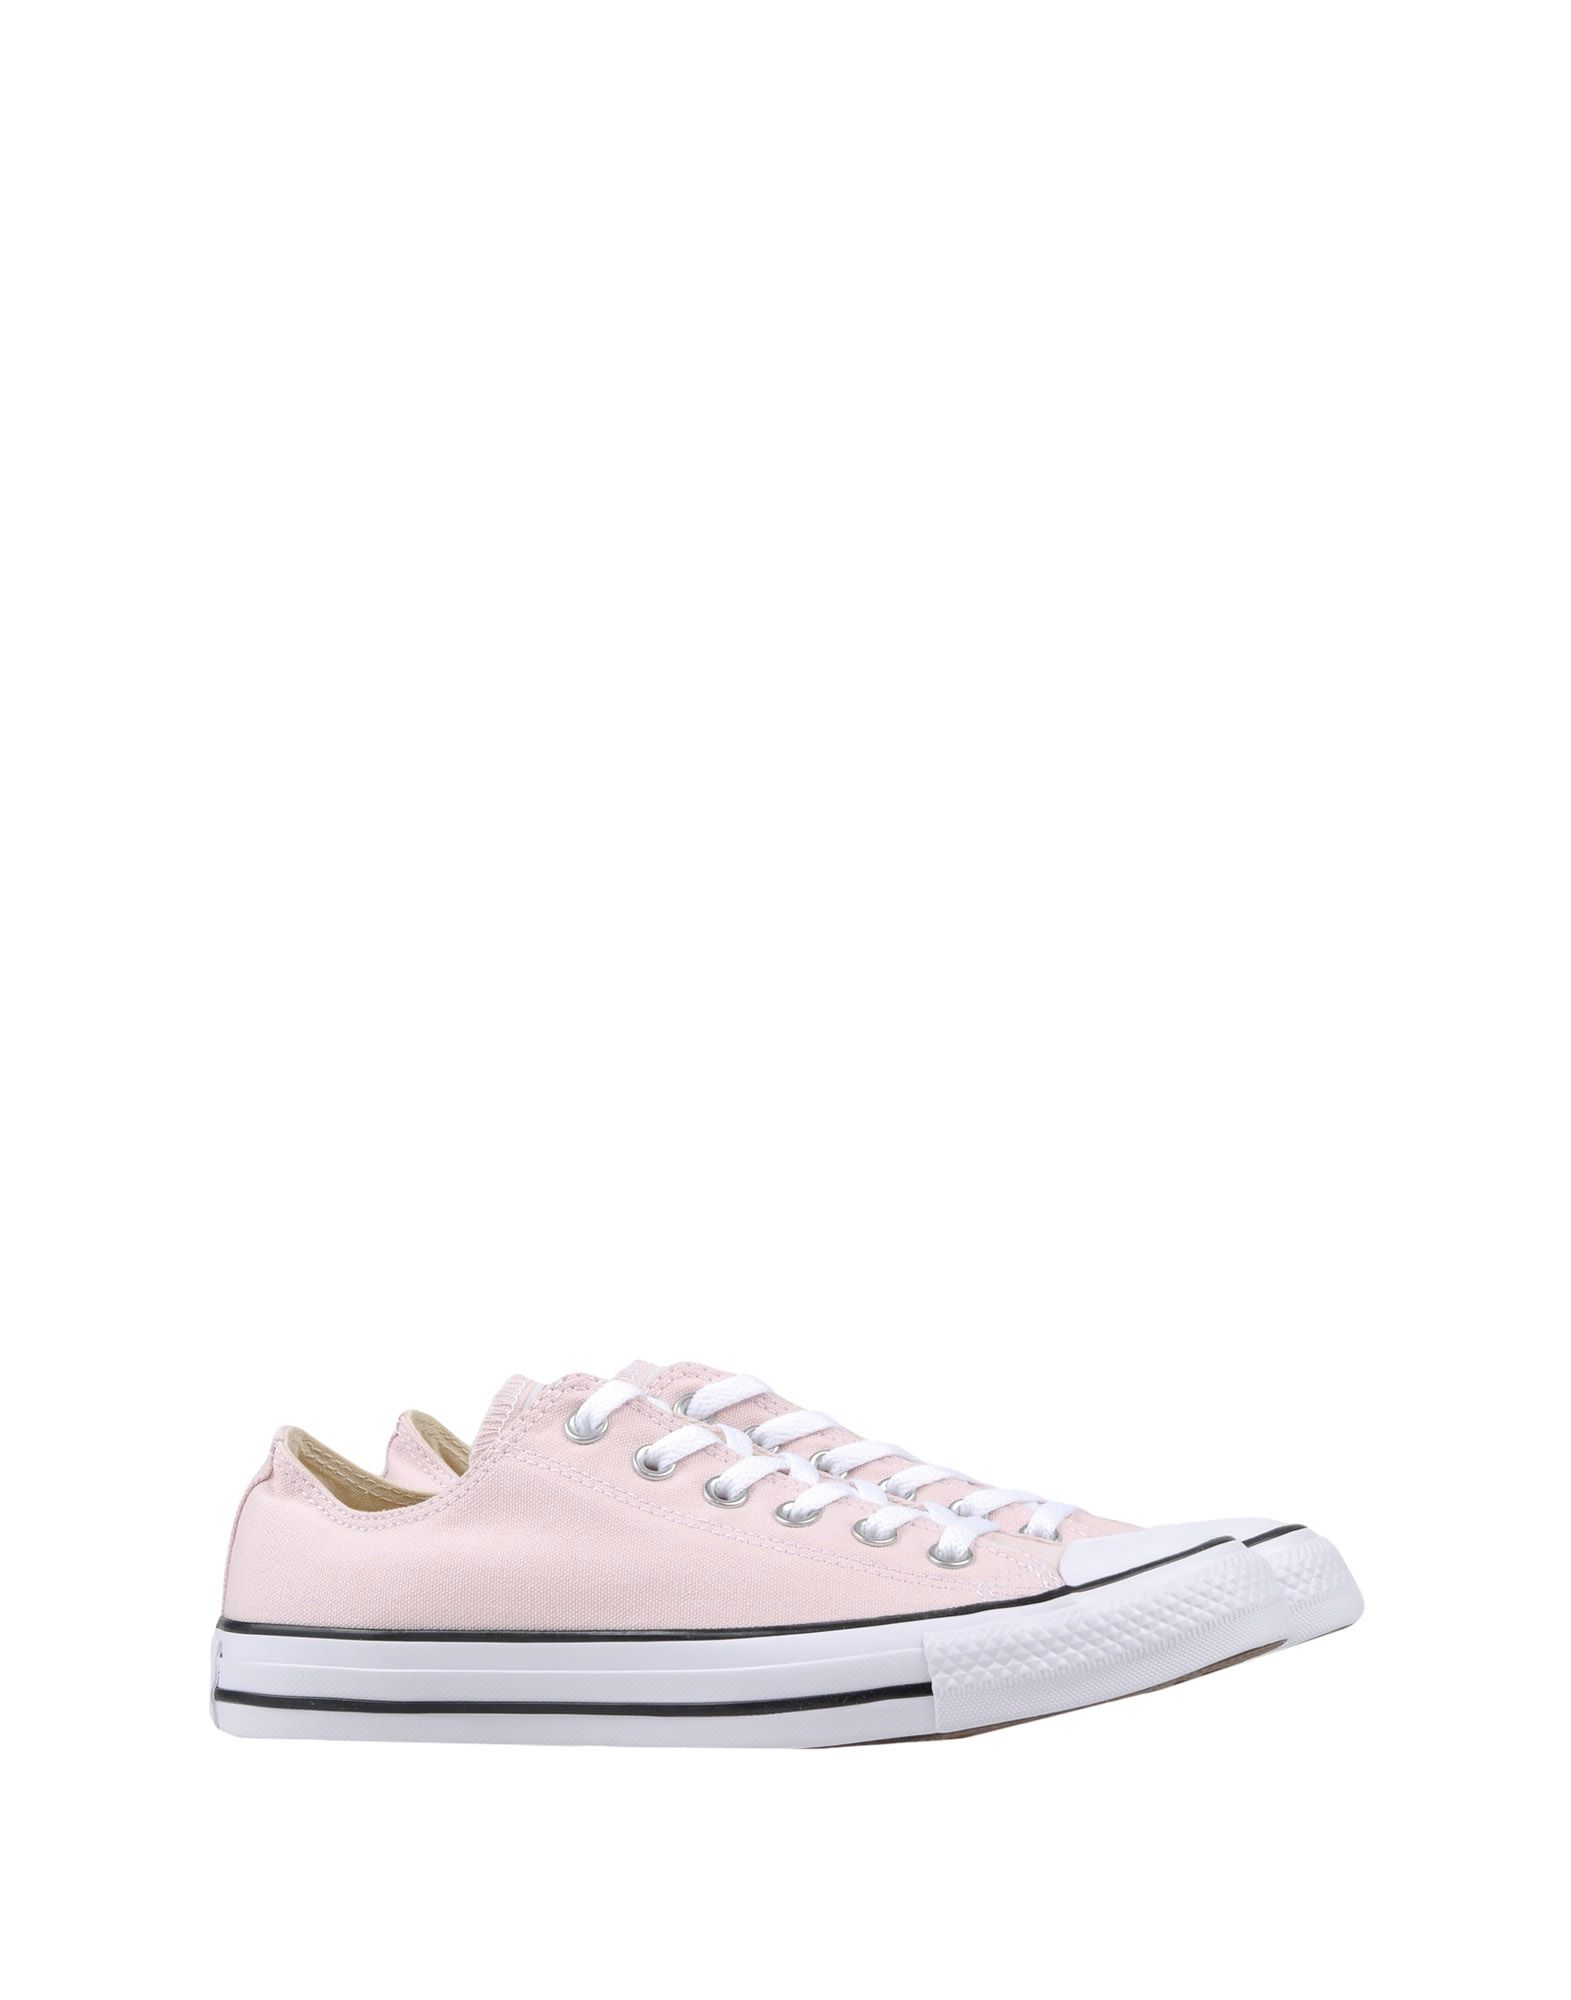 Sneakers Converse All Star Ctas Ox Canvas Seasonal Colors - Femme - Sneakers Converse All Star sur